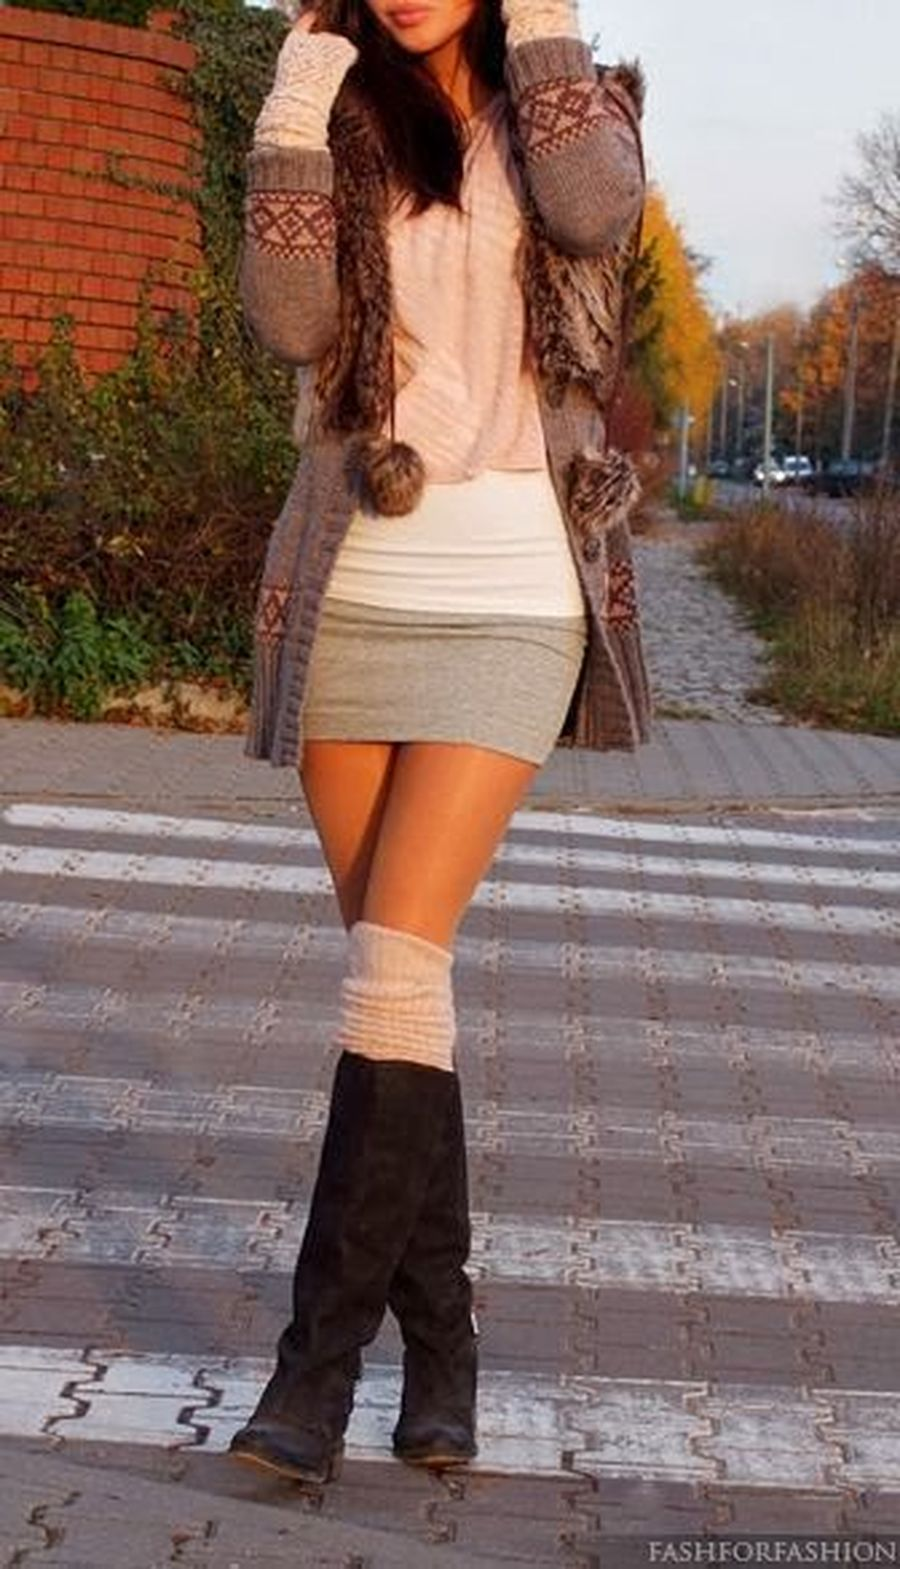 Inspiring skirt and boots combinations for fall and winter outfits 43